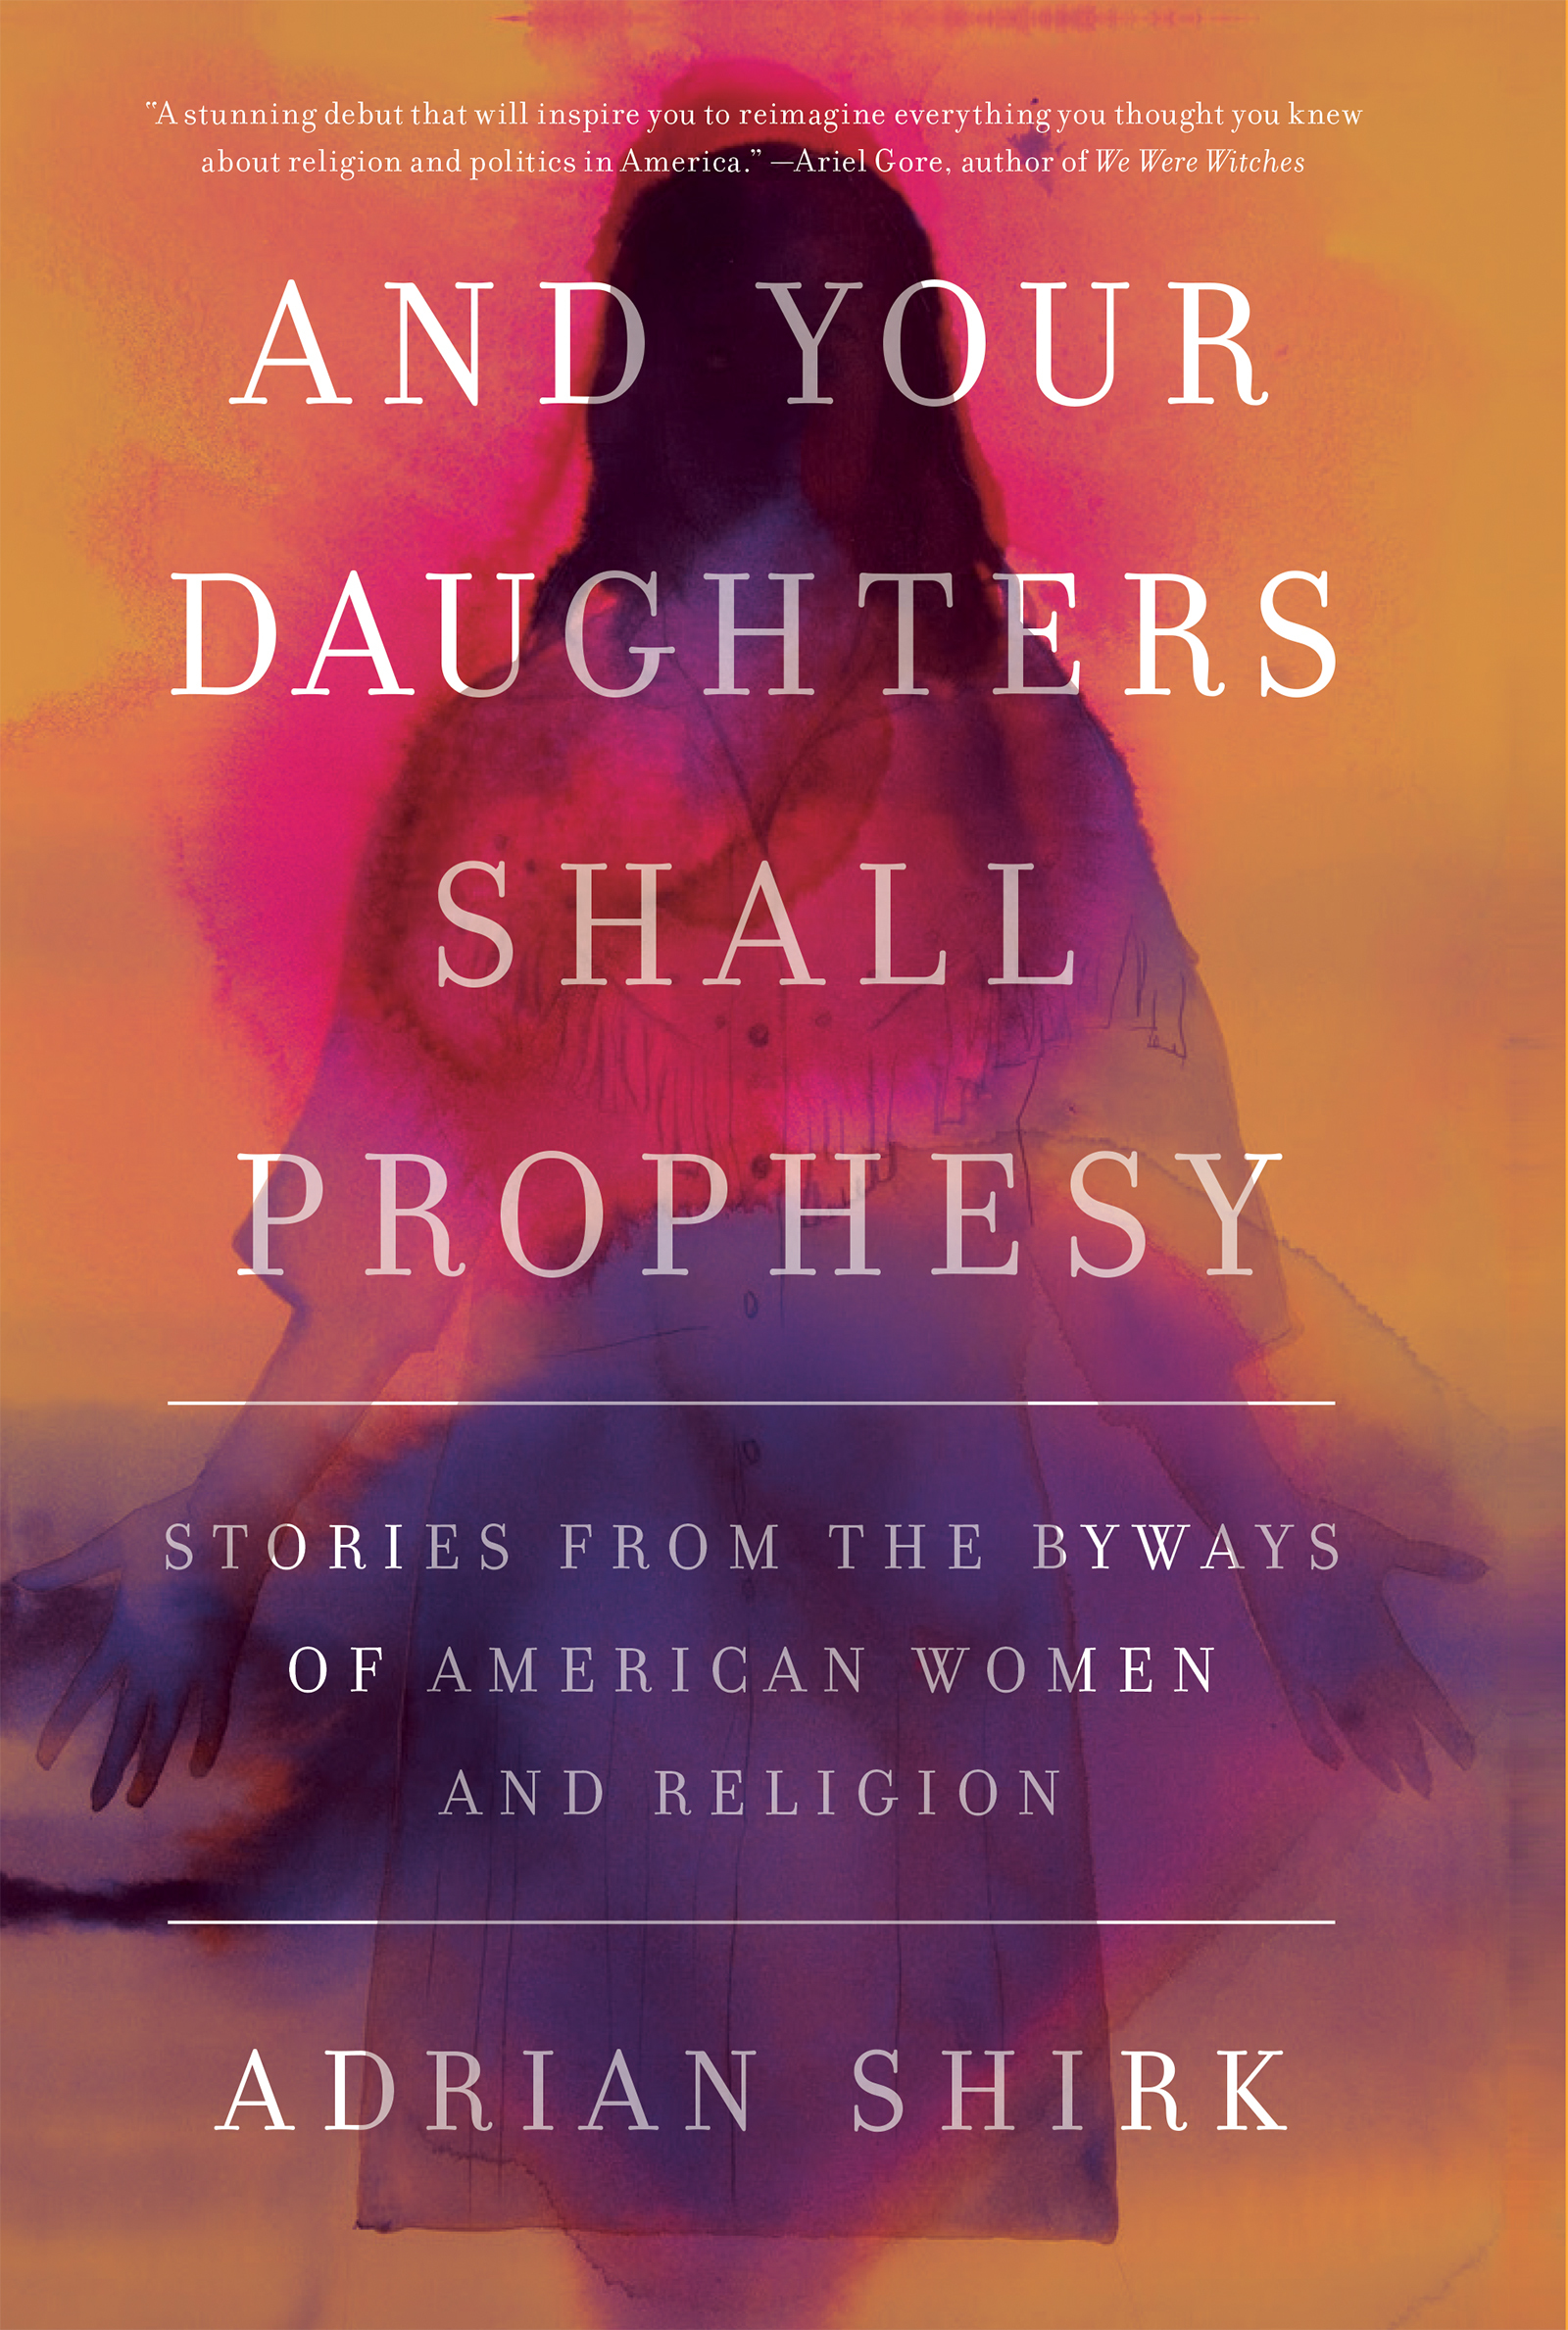 AND YOUR DAUGHTERS SHALL PROPHESY  BY ADRIAN SHIRK  COUNTERPOINT | 2017